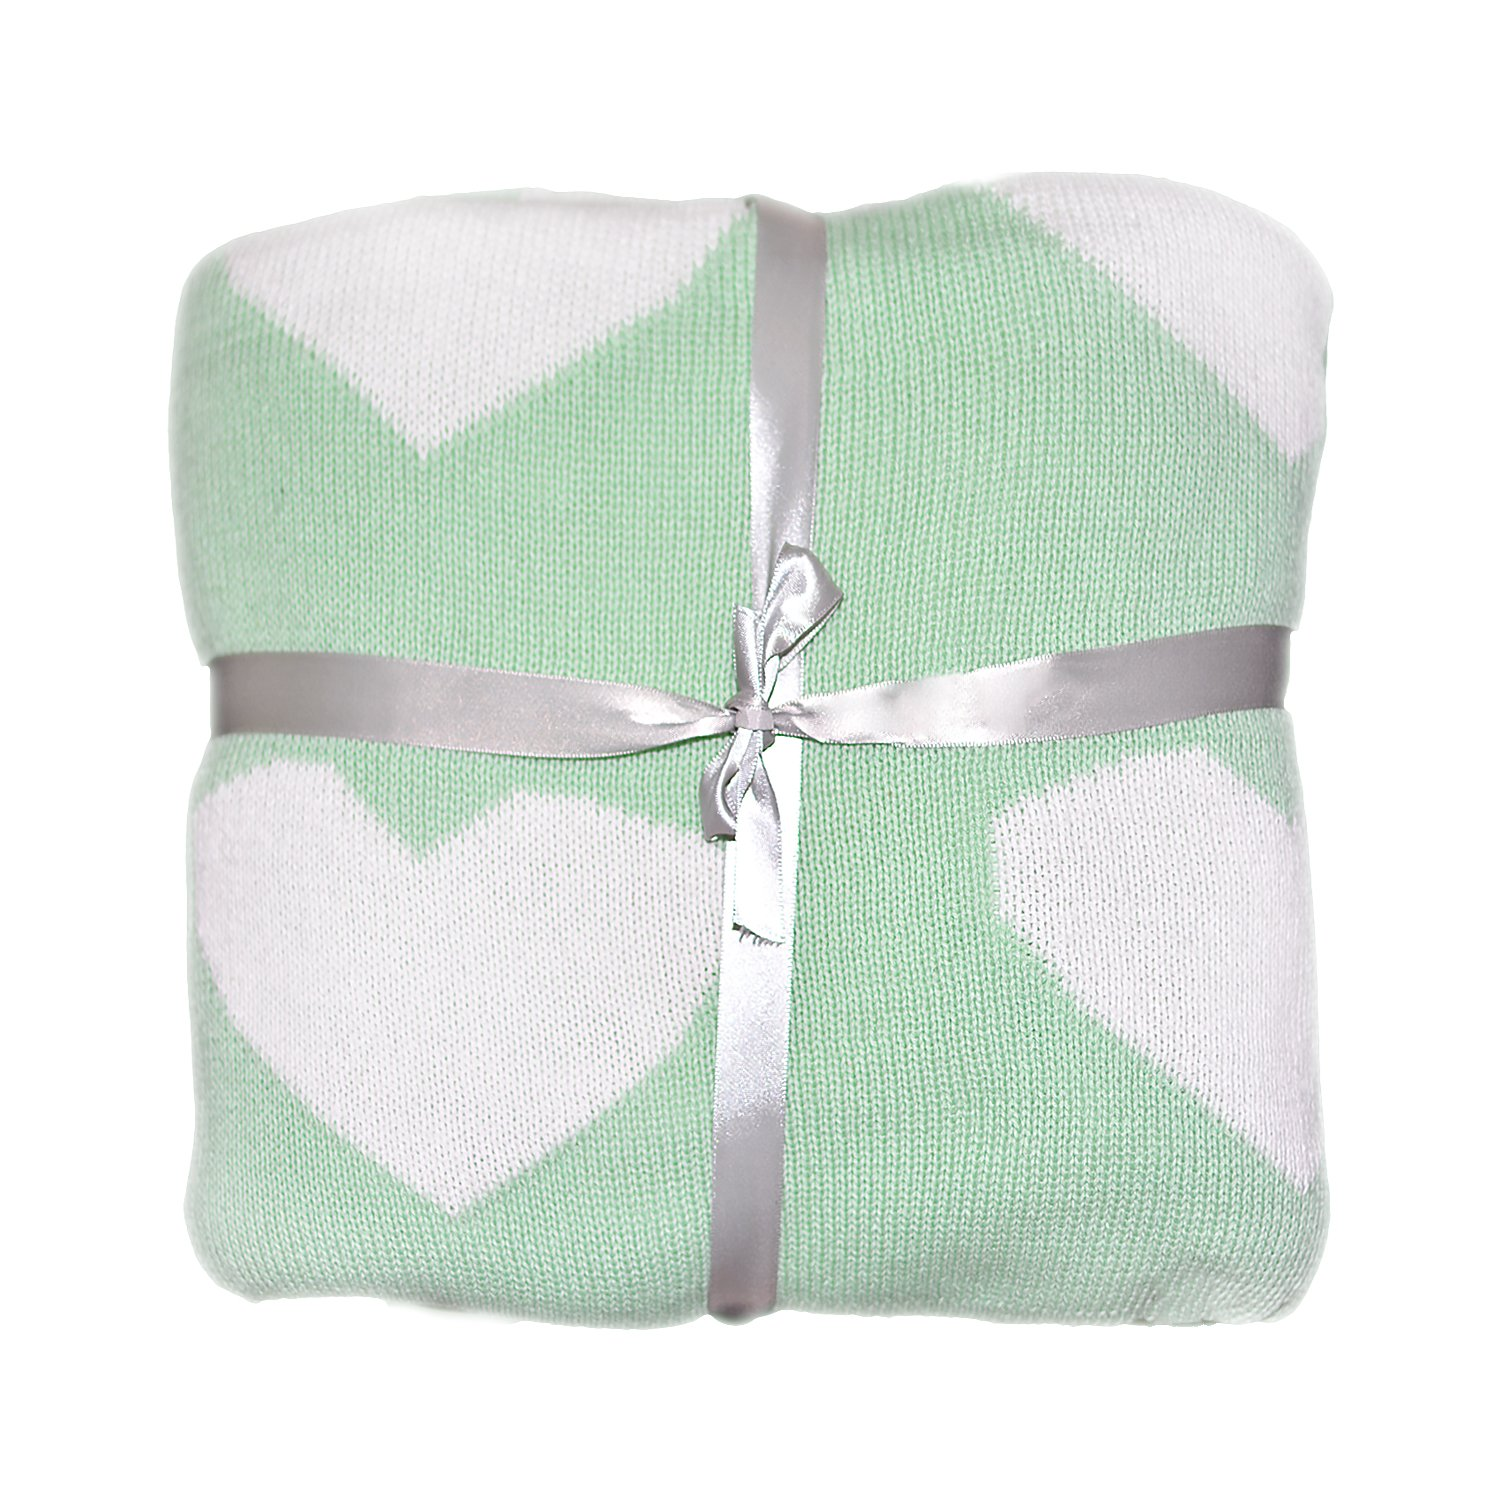 Brandream Soft Kids Baby Blankets Knit Blanket Cotton Best Throw Blanket 43 x 51inch, Mint Heart by Brandream